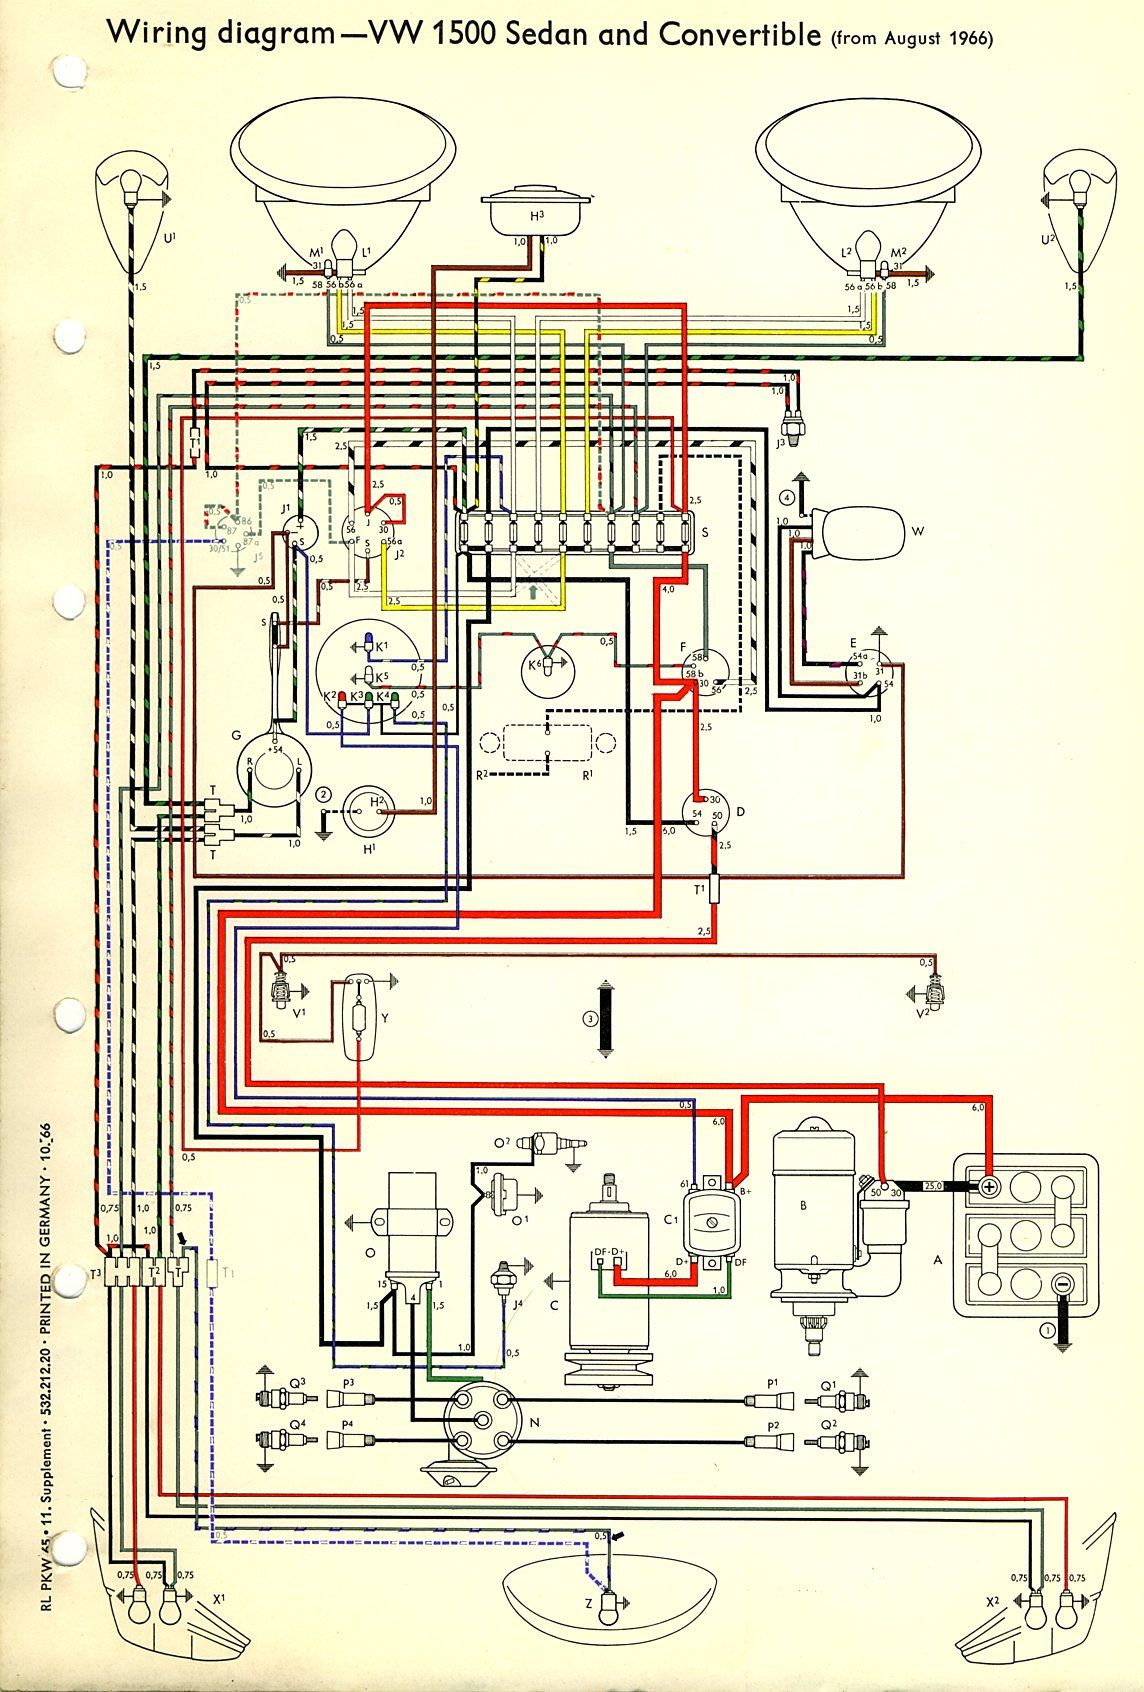 1967 vw wiring diagrams wiring diagram sheet wiring diagram 1957 chevy 1967 vw beetle [ 1144 x 1692 Pixel ]